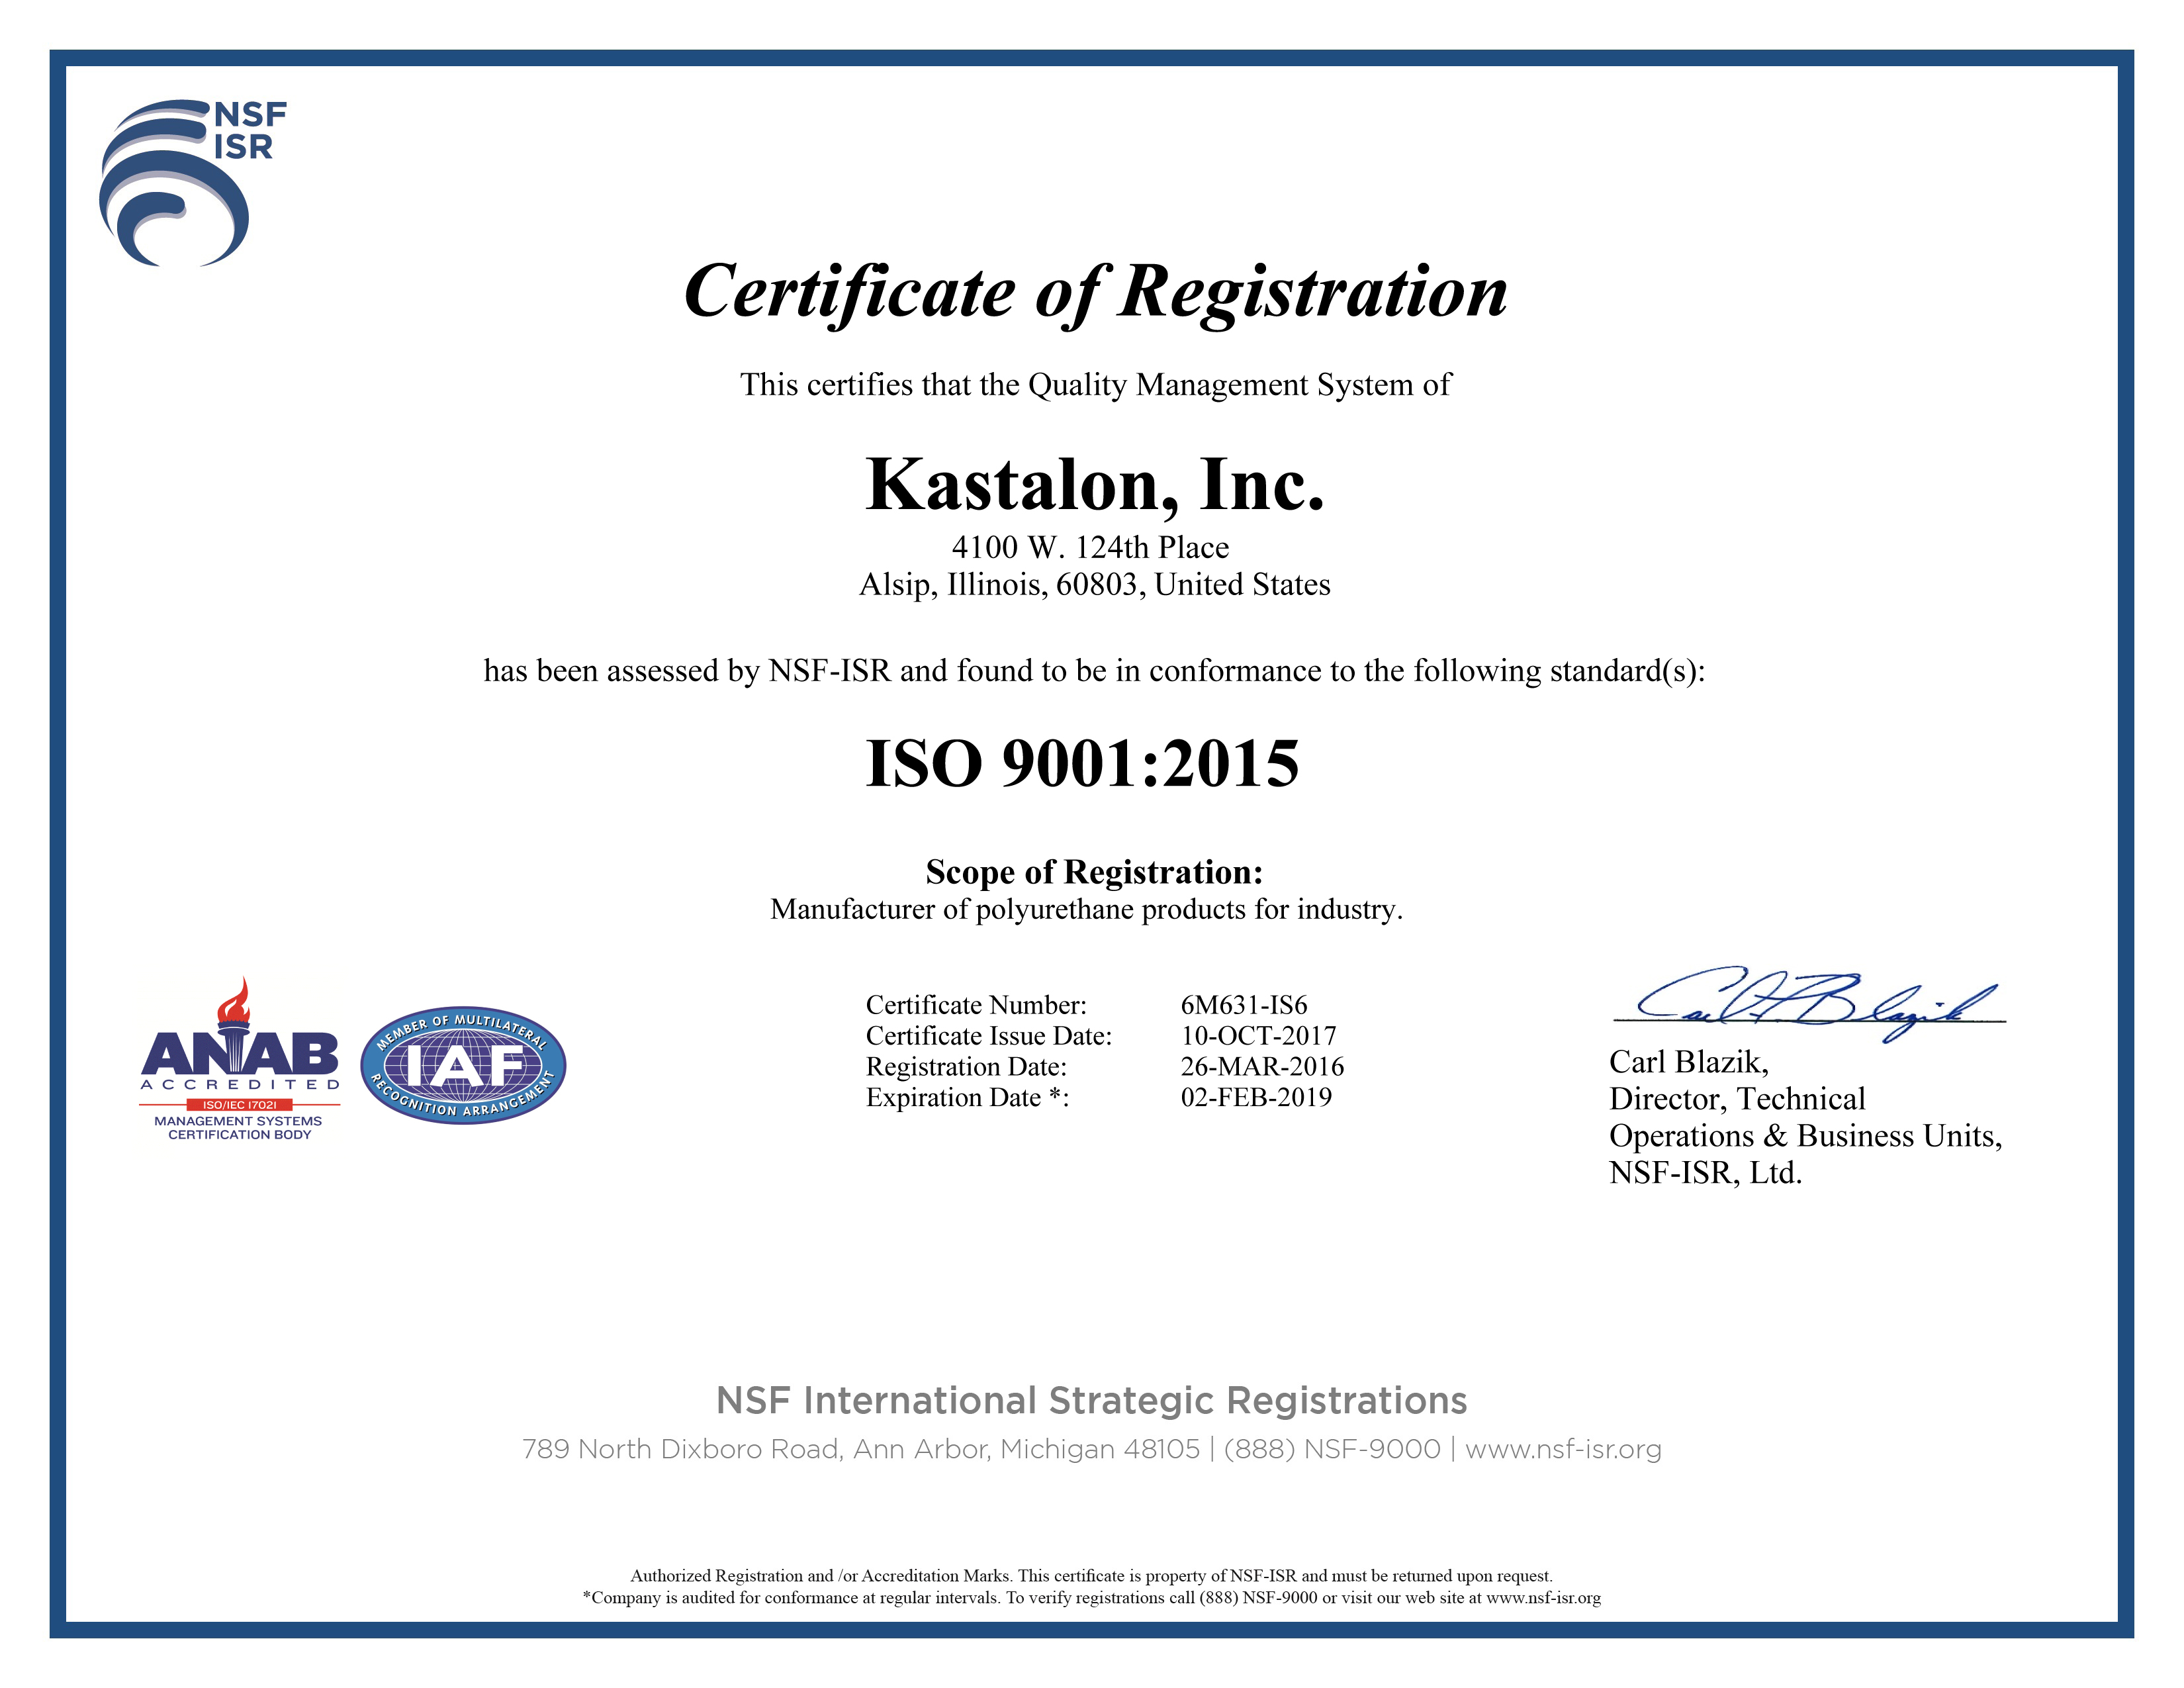 Kastalon announces iso 90012015 certification by nsf isr kastalon announces iso 90012015 certification by nsf isr 1betcityfo Choice Image